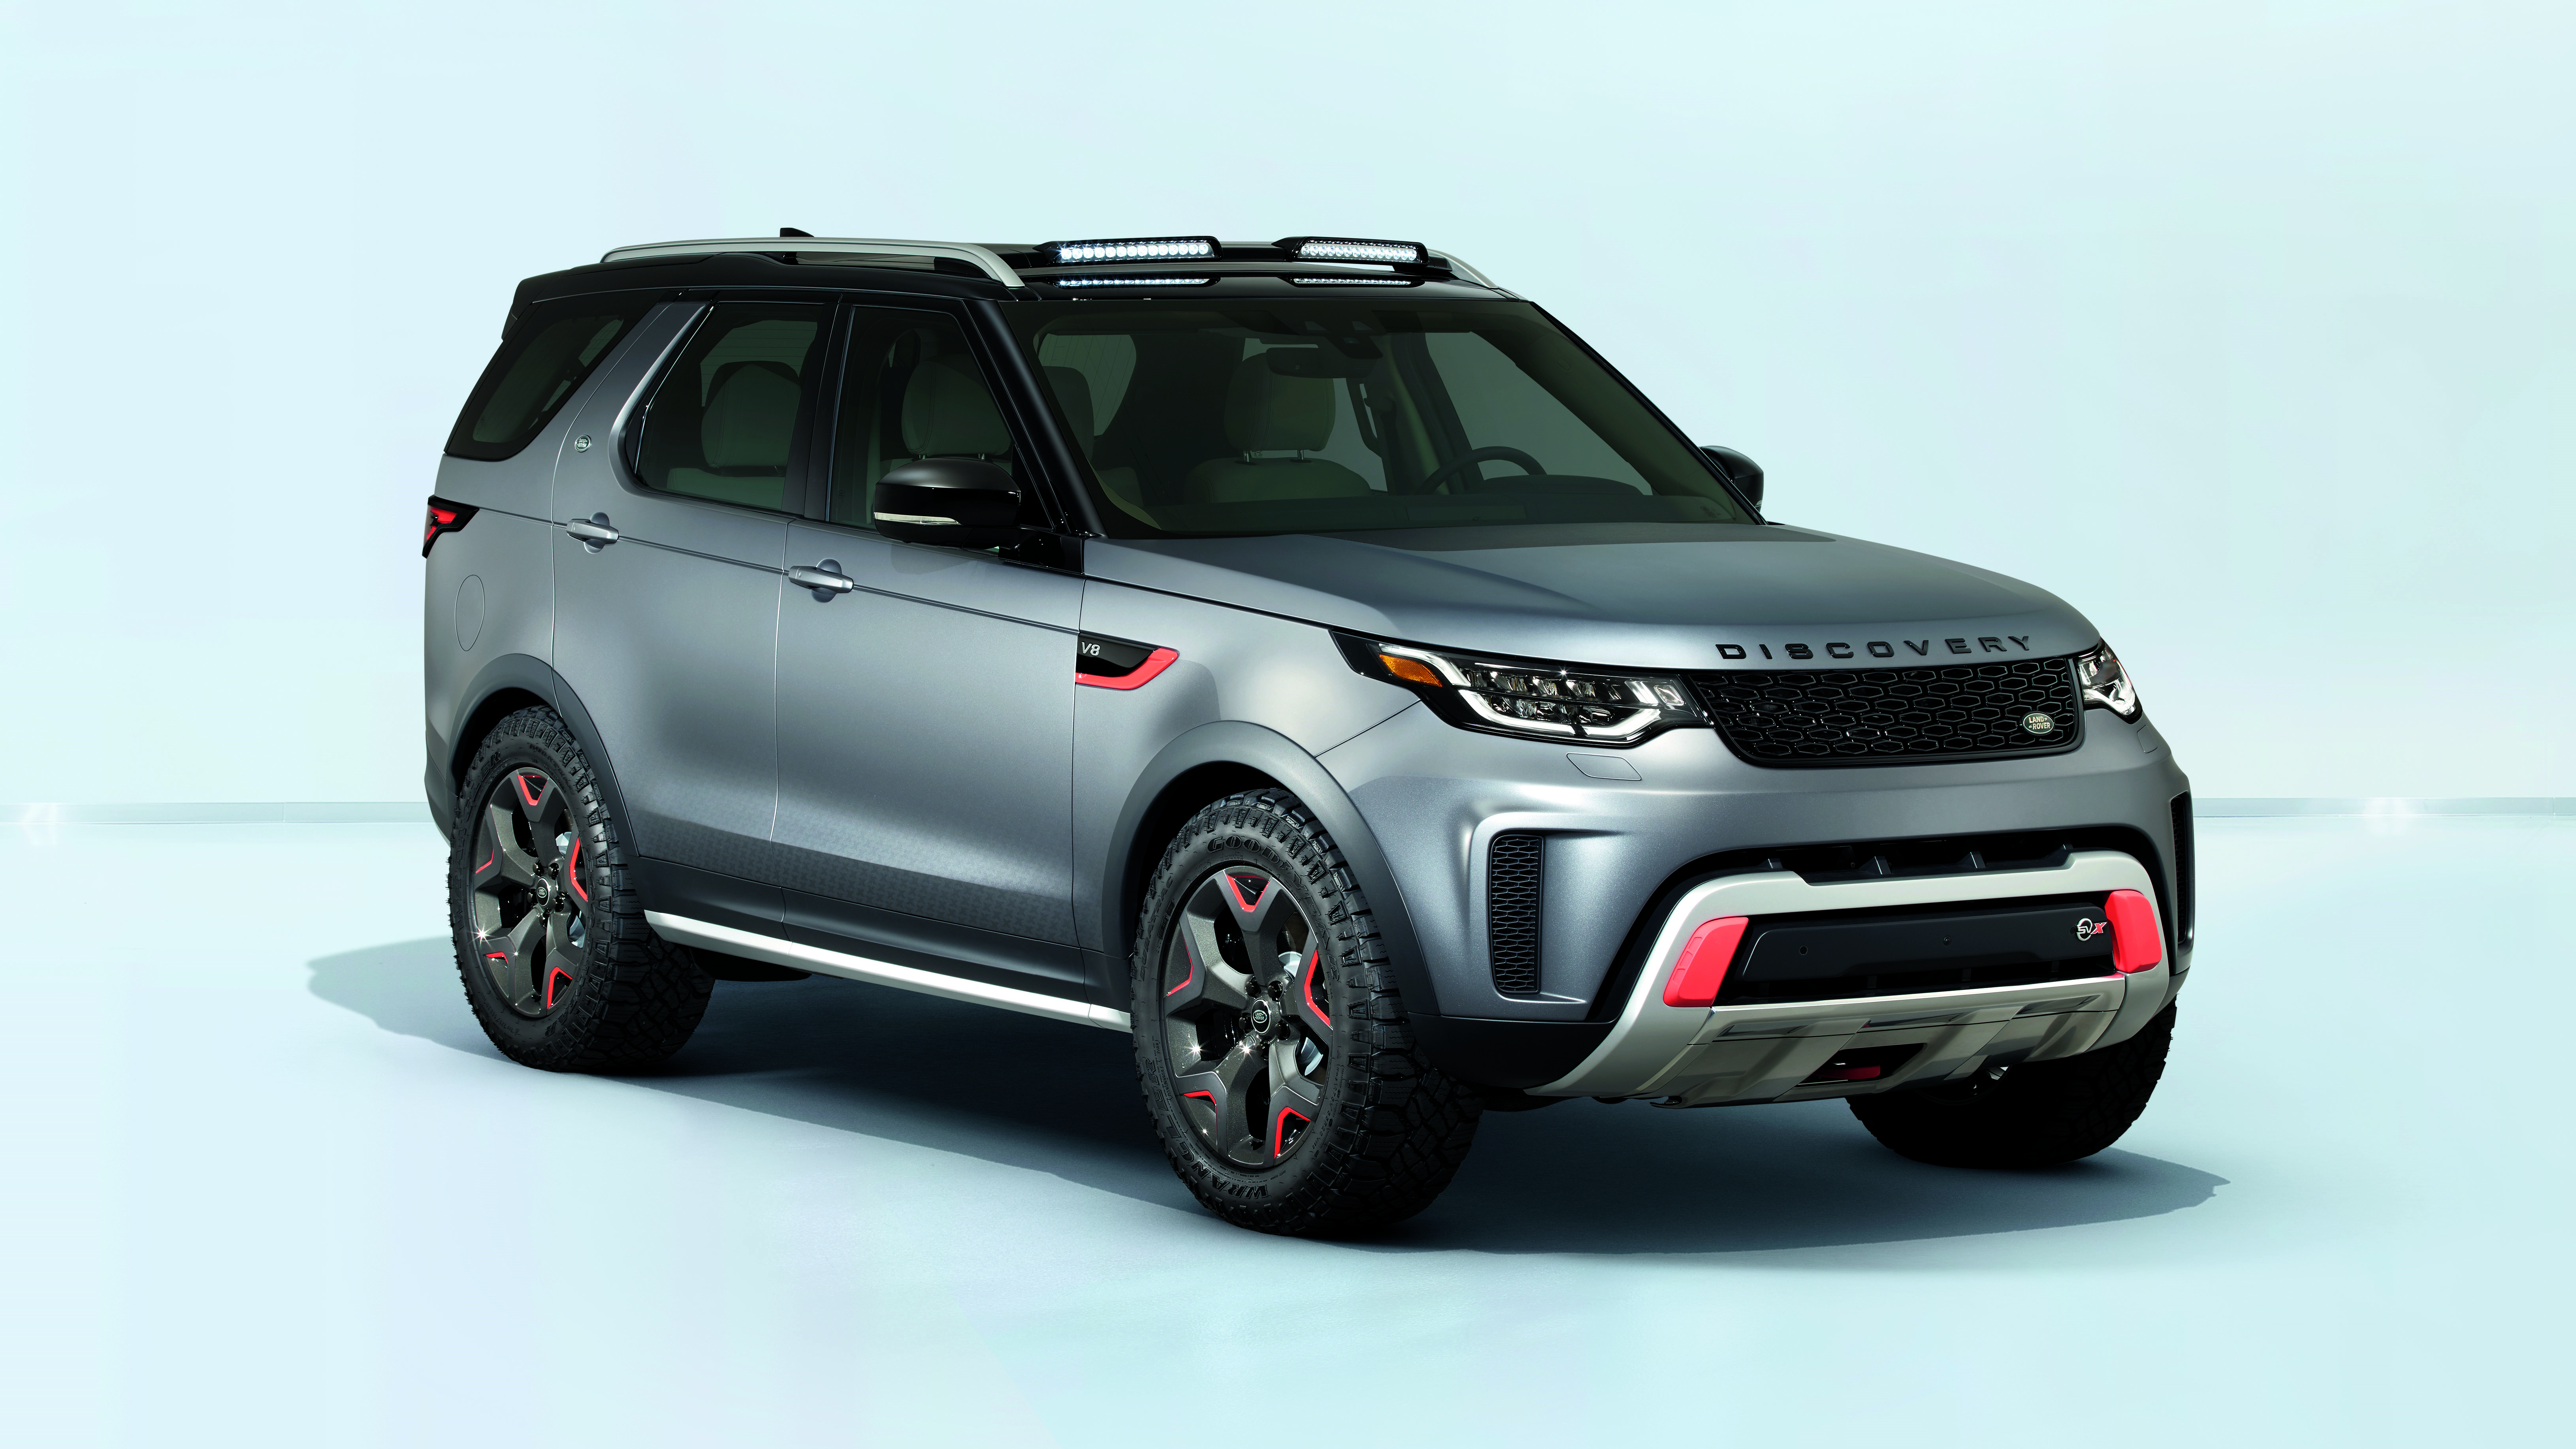 rover exterior sport rq land oem suv lease discovery base landrover